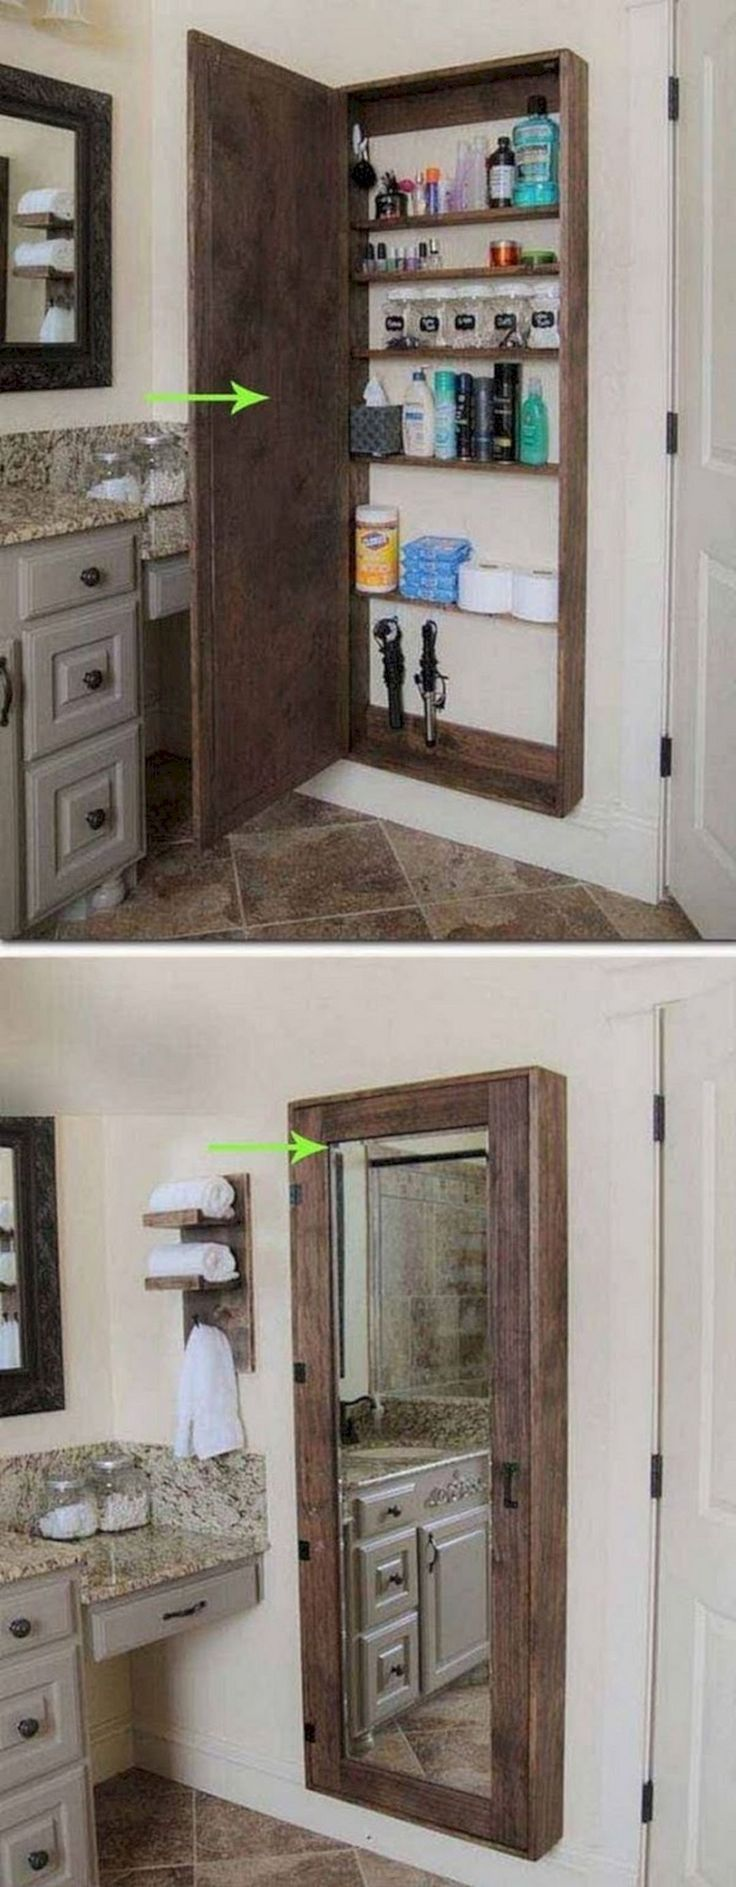 123 Best Inspirations Smart Home Renovation Ideas On A Budget 9901 Clever Bathroom Storage Bathroom Mirrors Diy Bathroom Mirror Storage